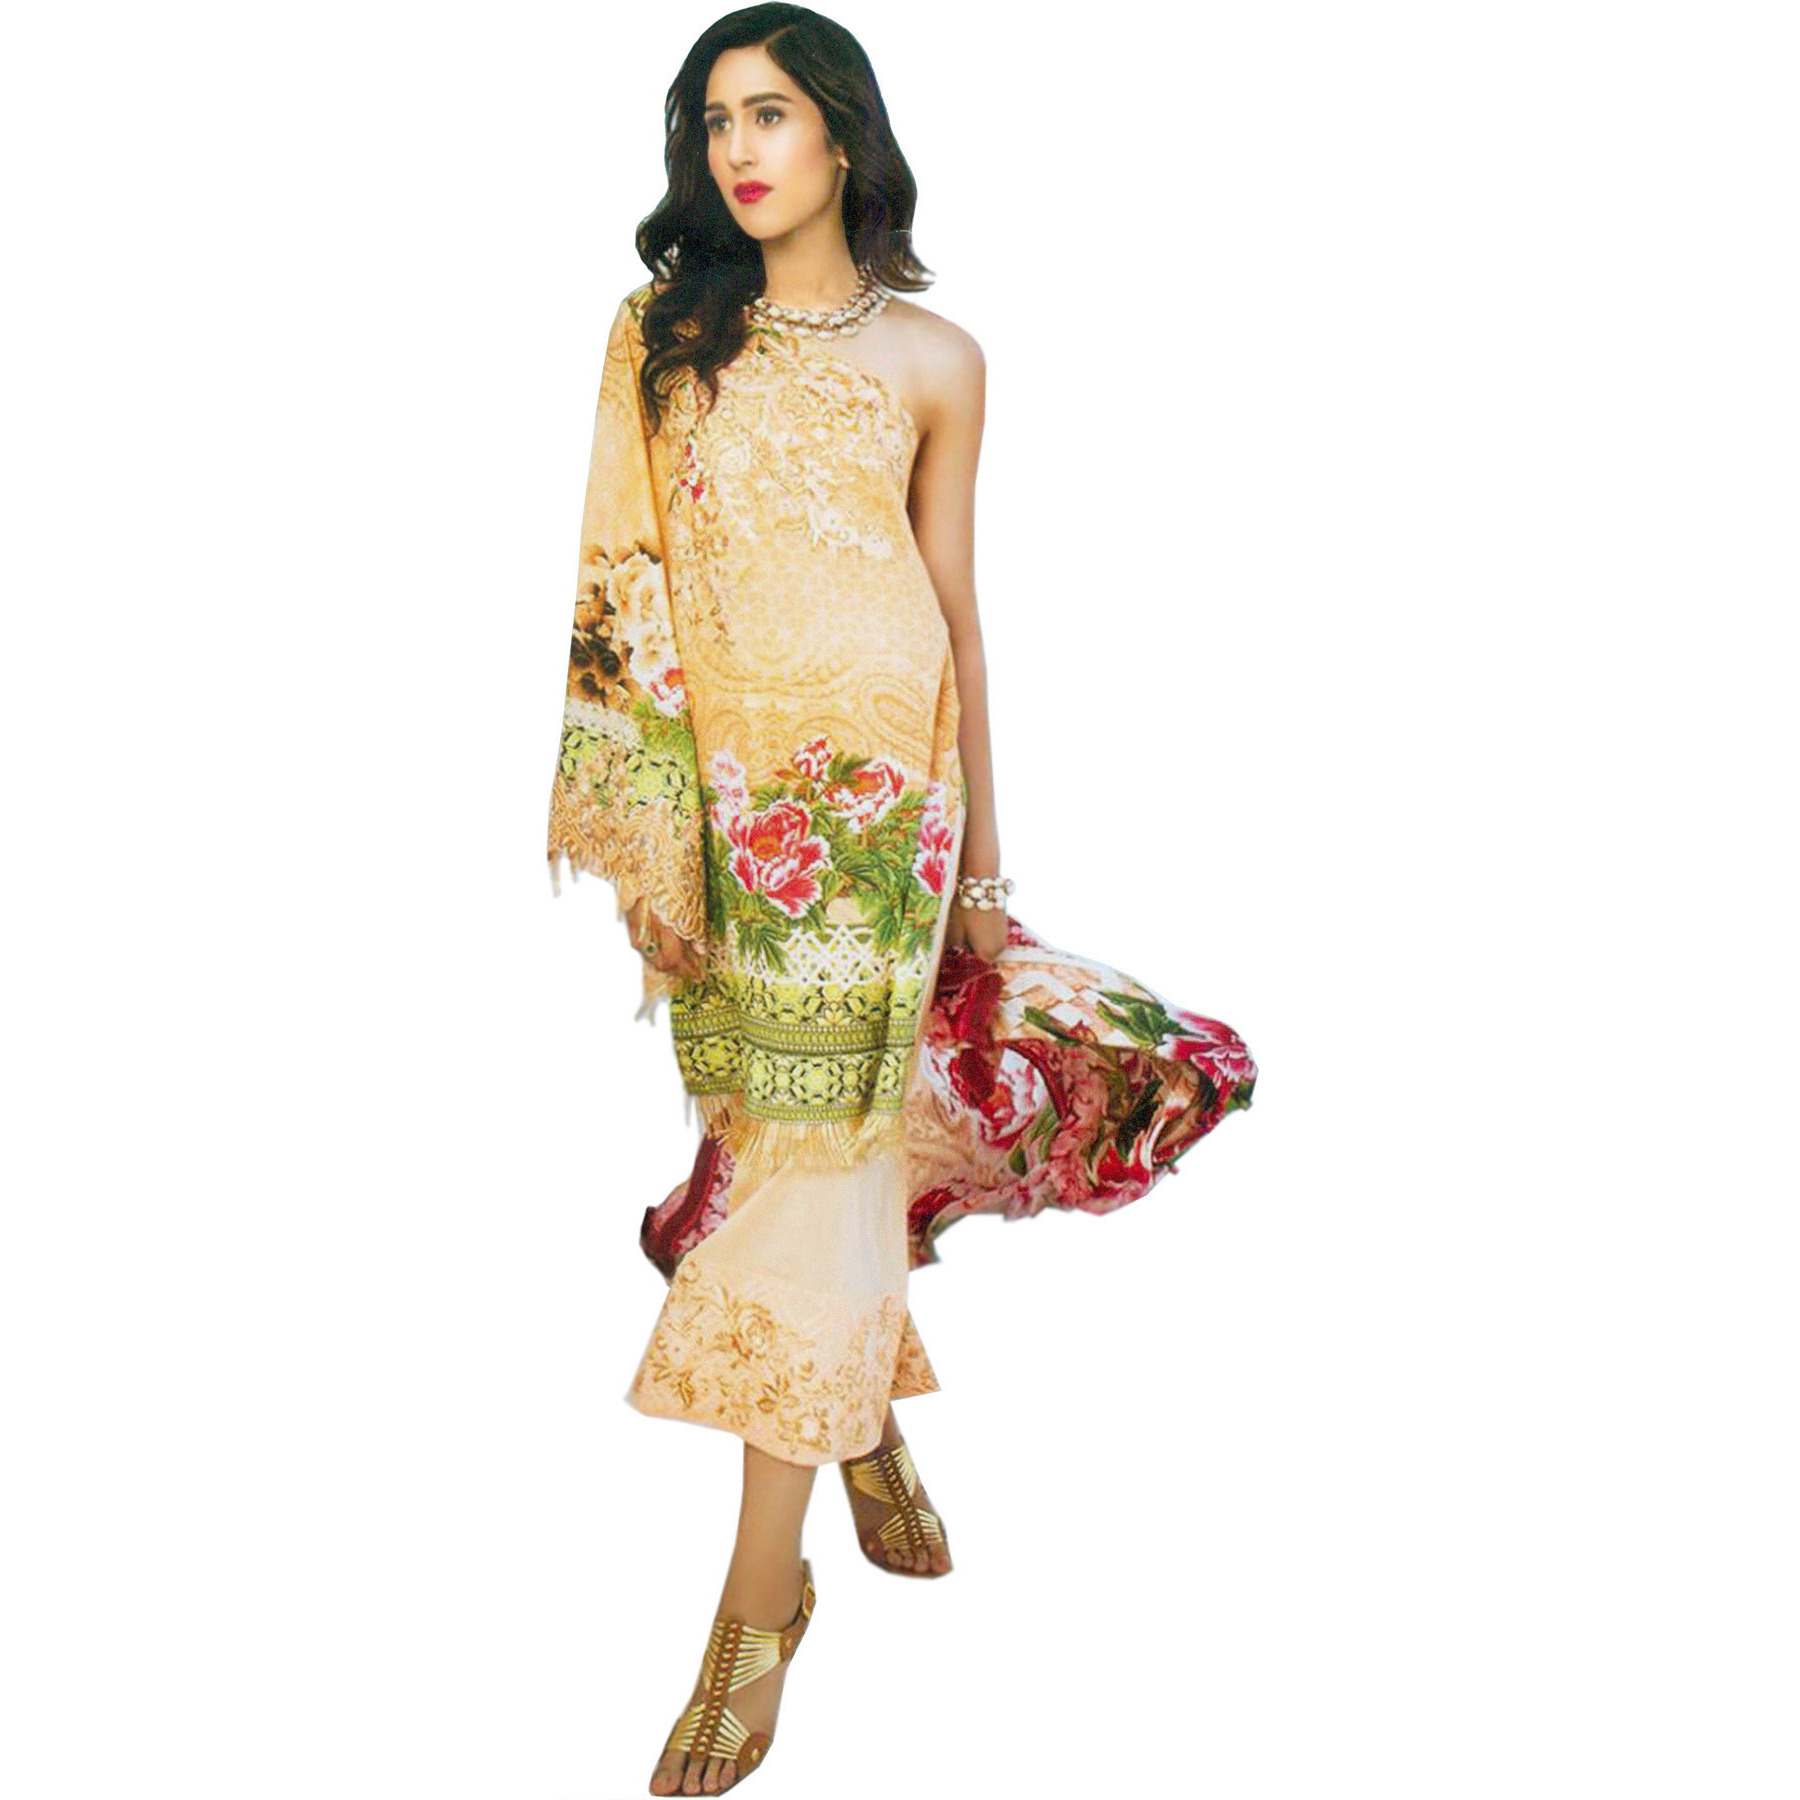 Honey-Peach Stylish Floral Printed Parallel Salwar Suit with Embroidered Patches